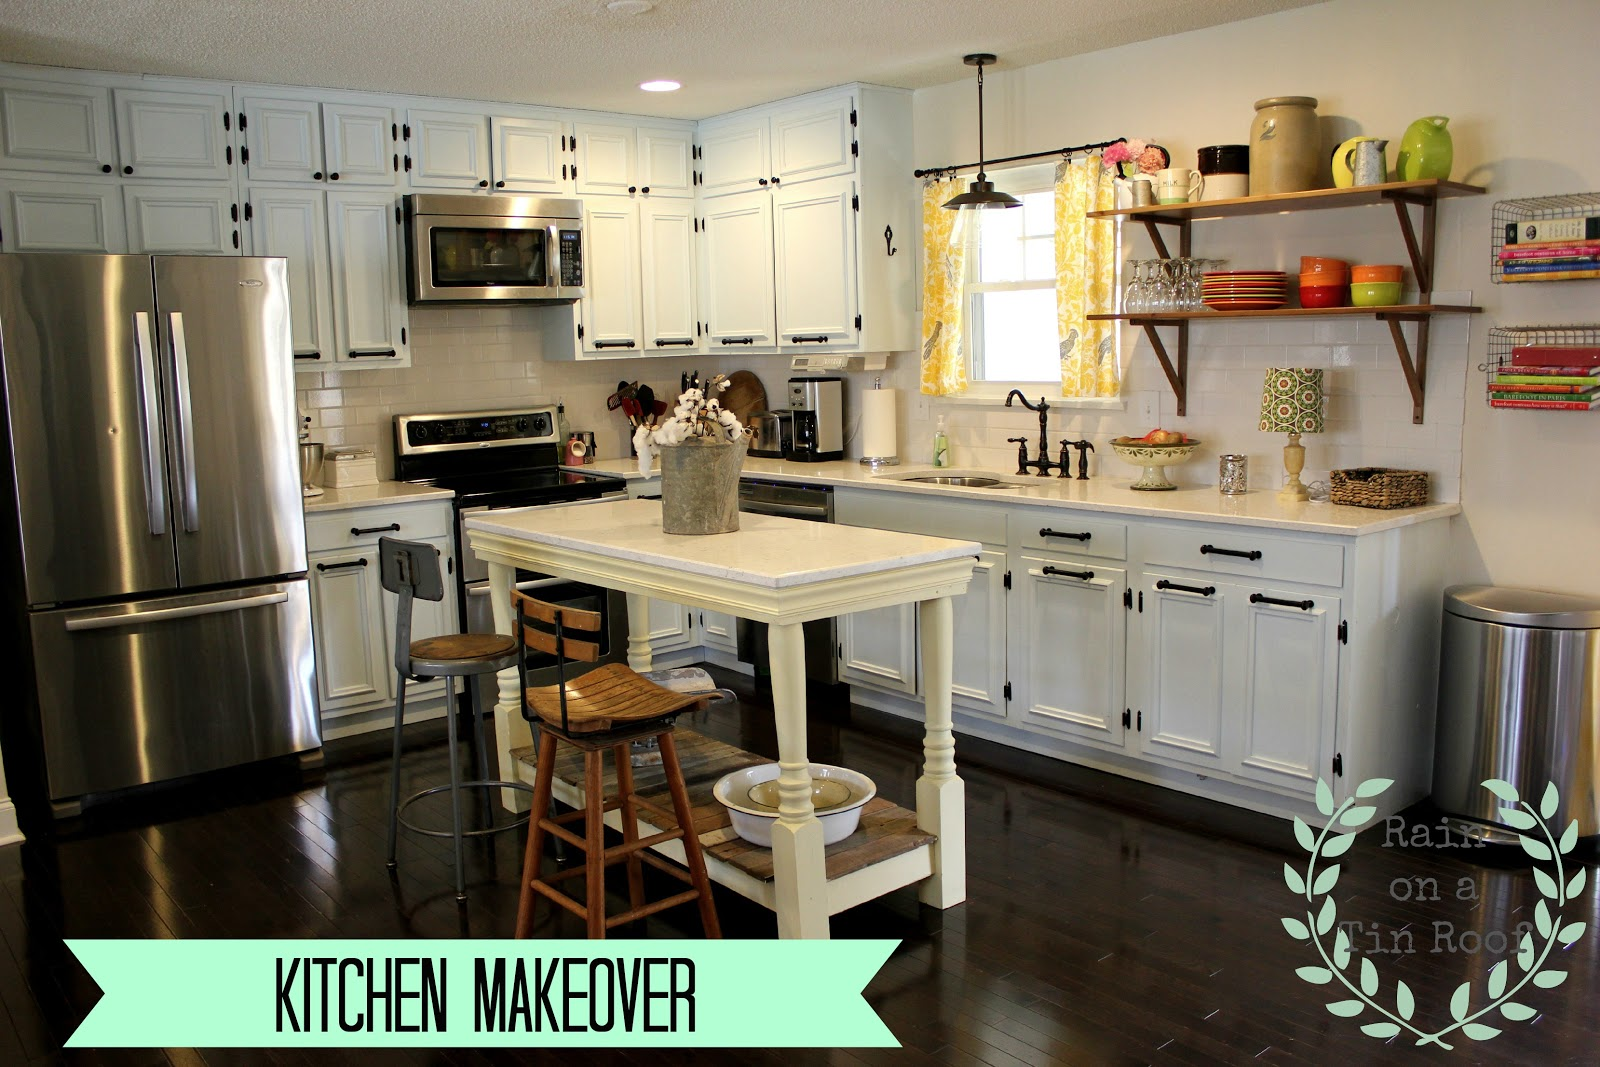 Kitchen Makeover {rainonatinroof.com} #kitchen #makeover #re Model #